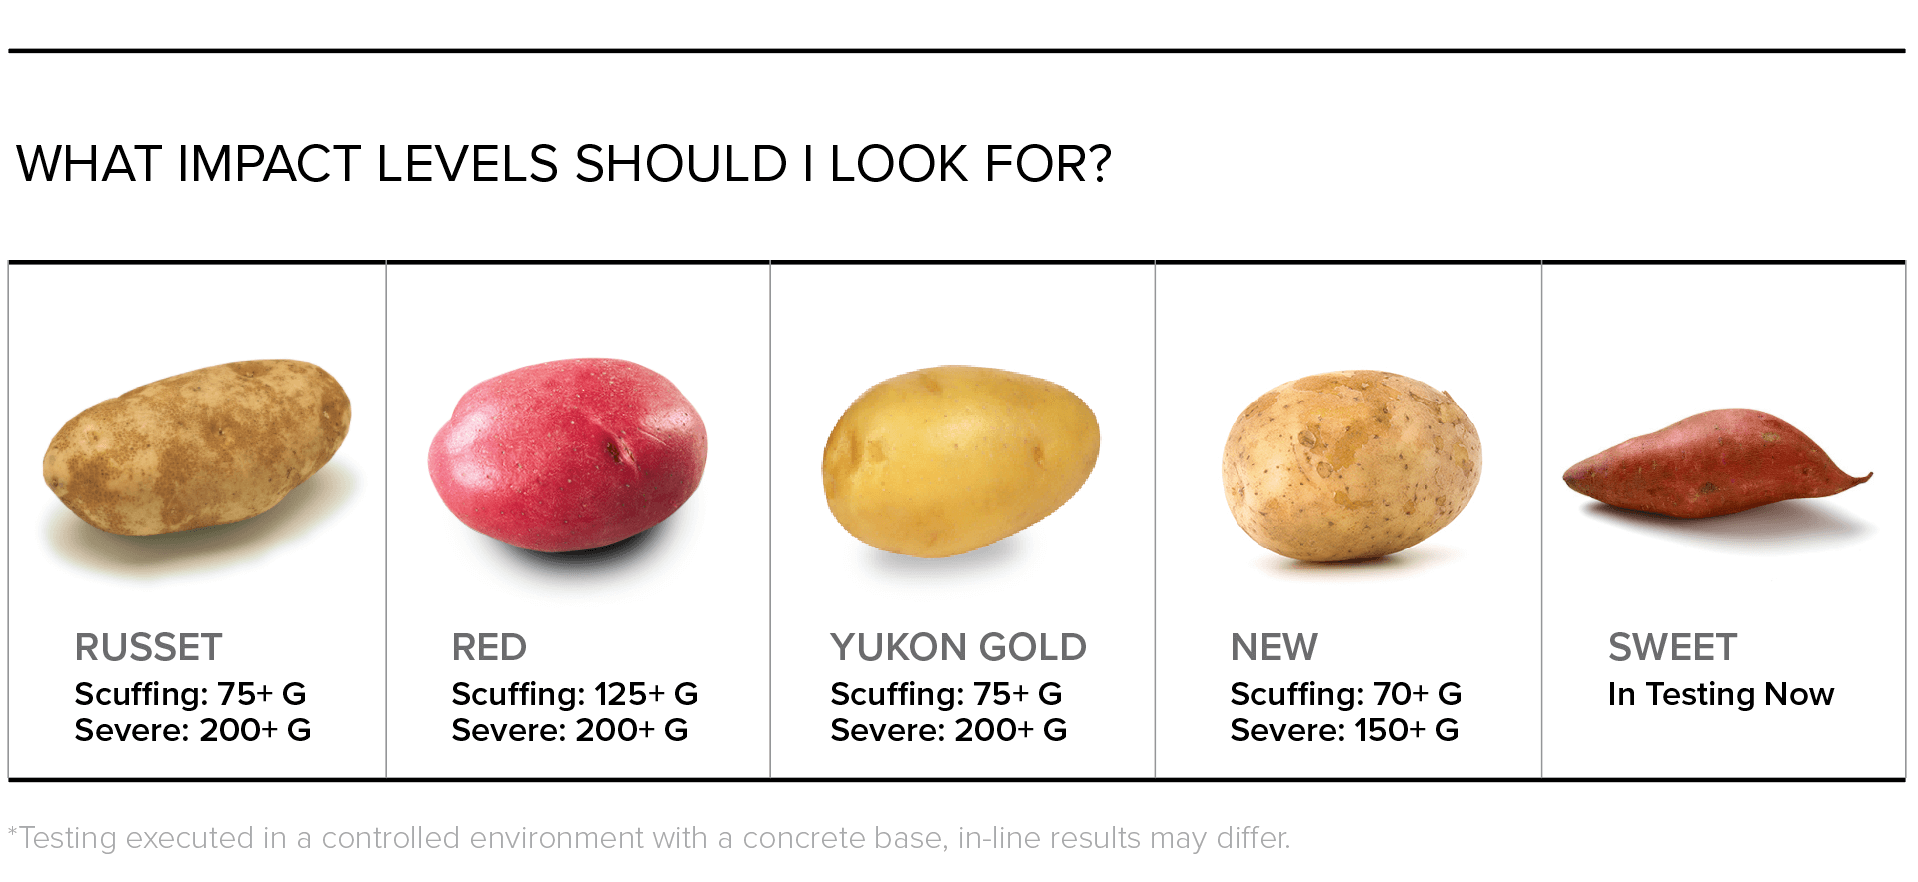 Impact levels to prevent bruising in Potatoes